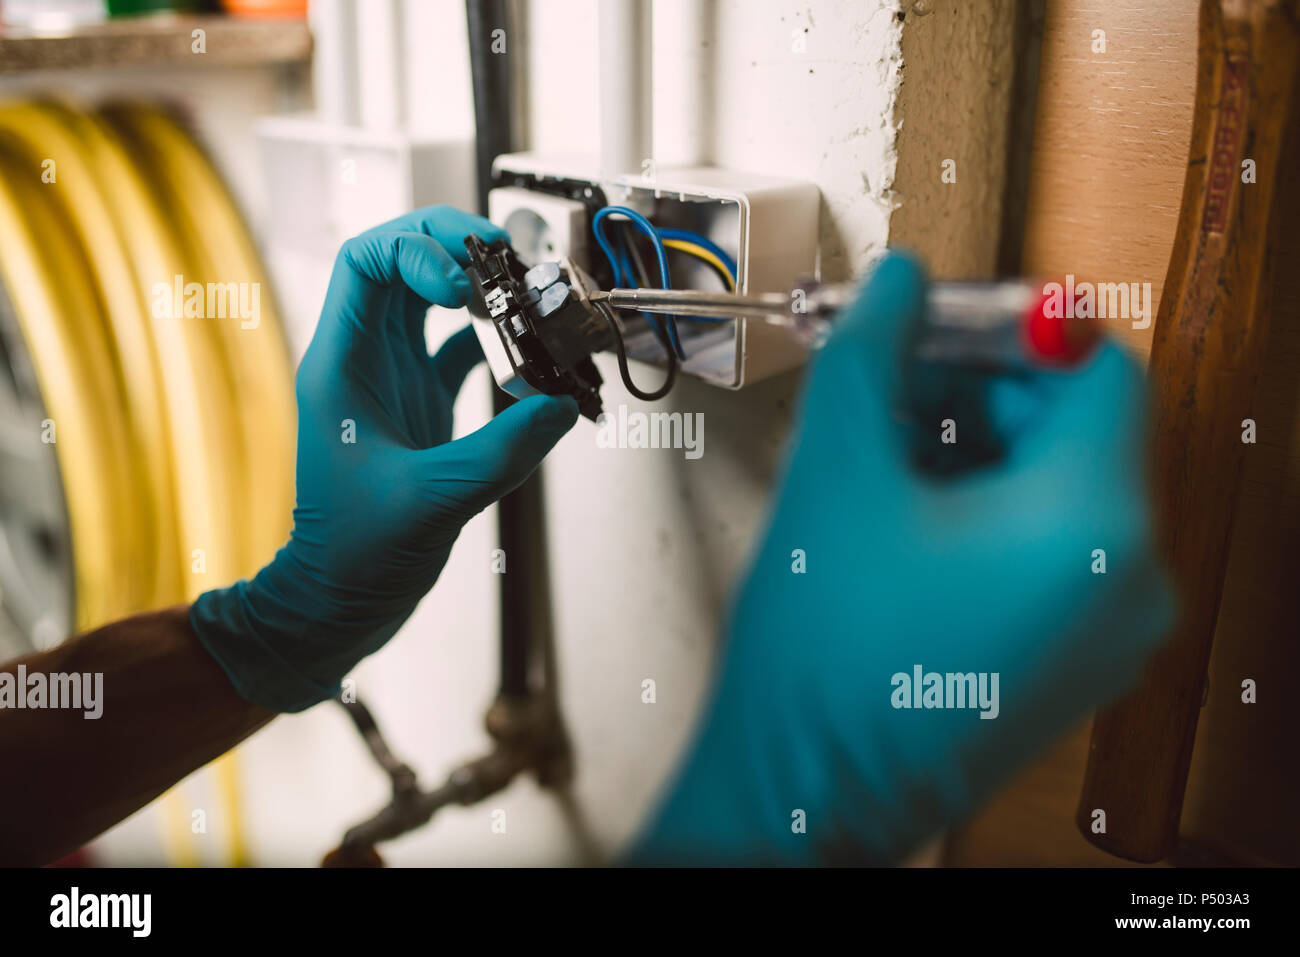 Detail of a man working on an electrical installation - Stock Image